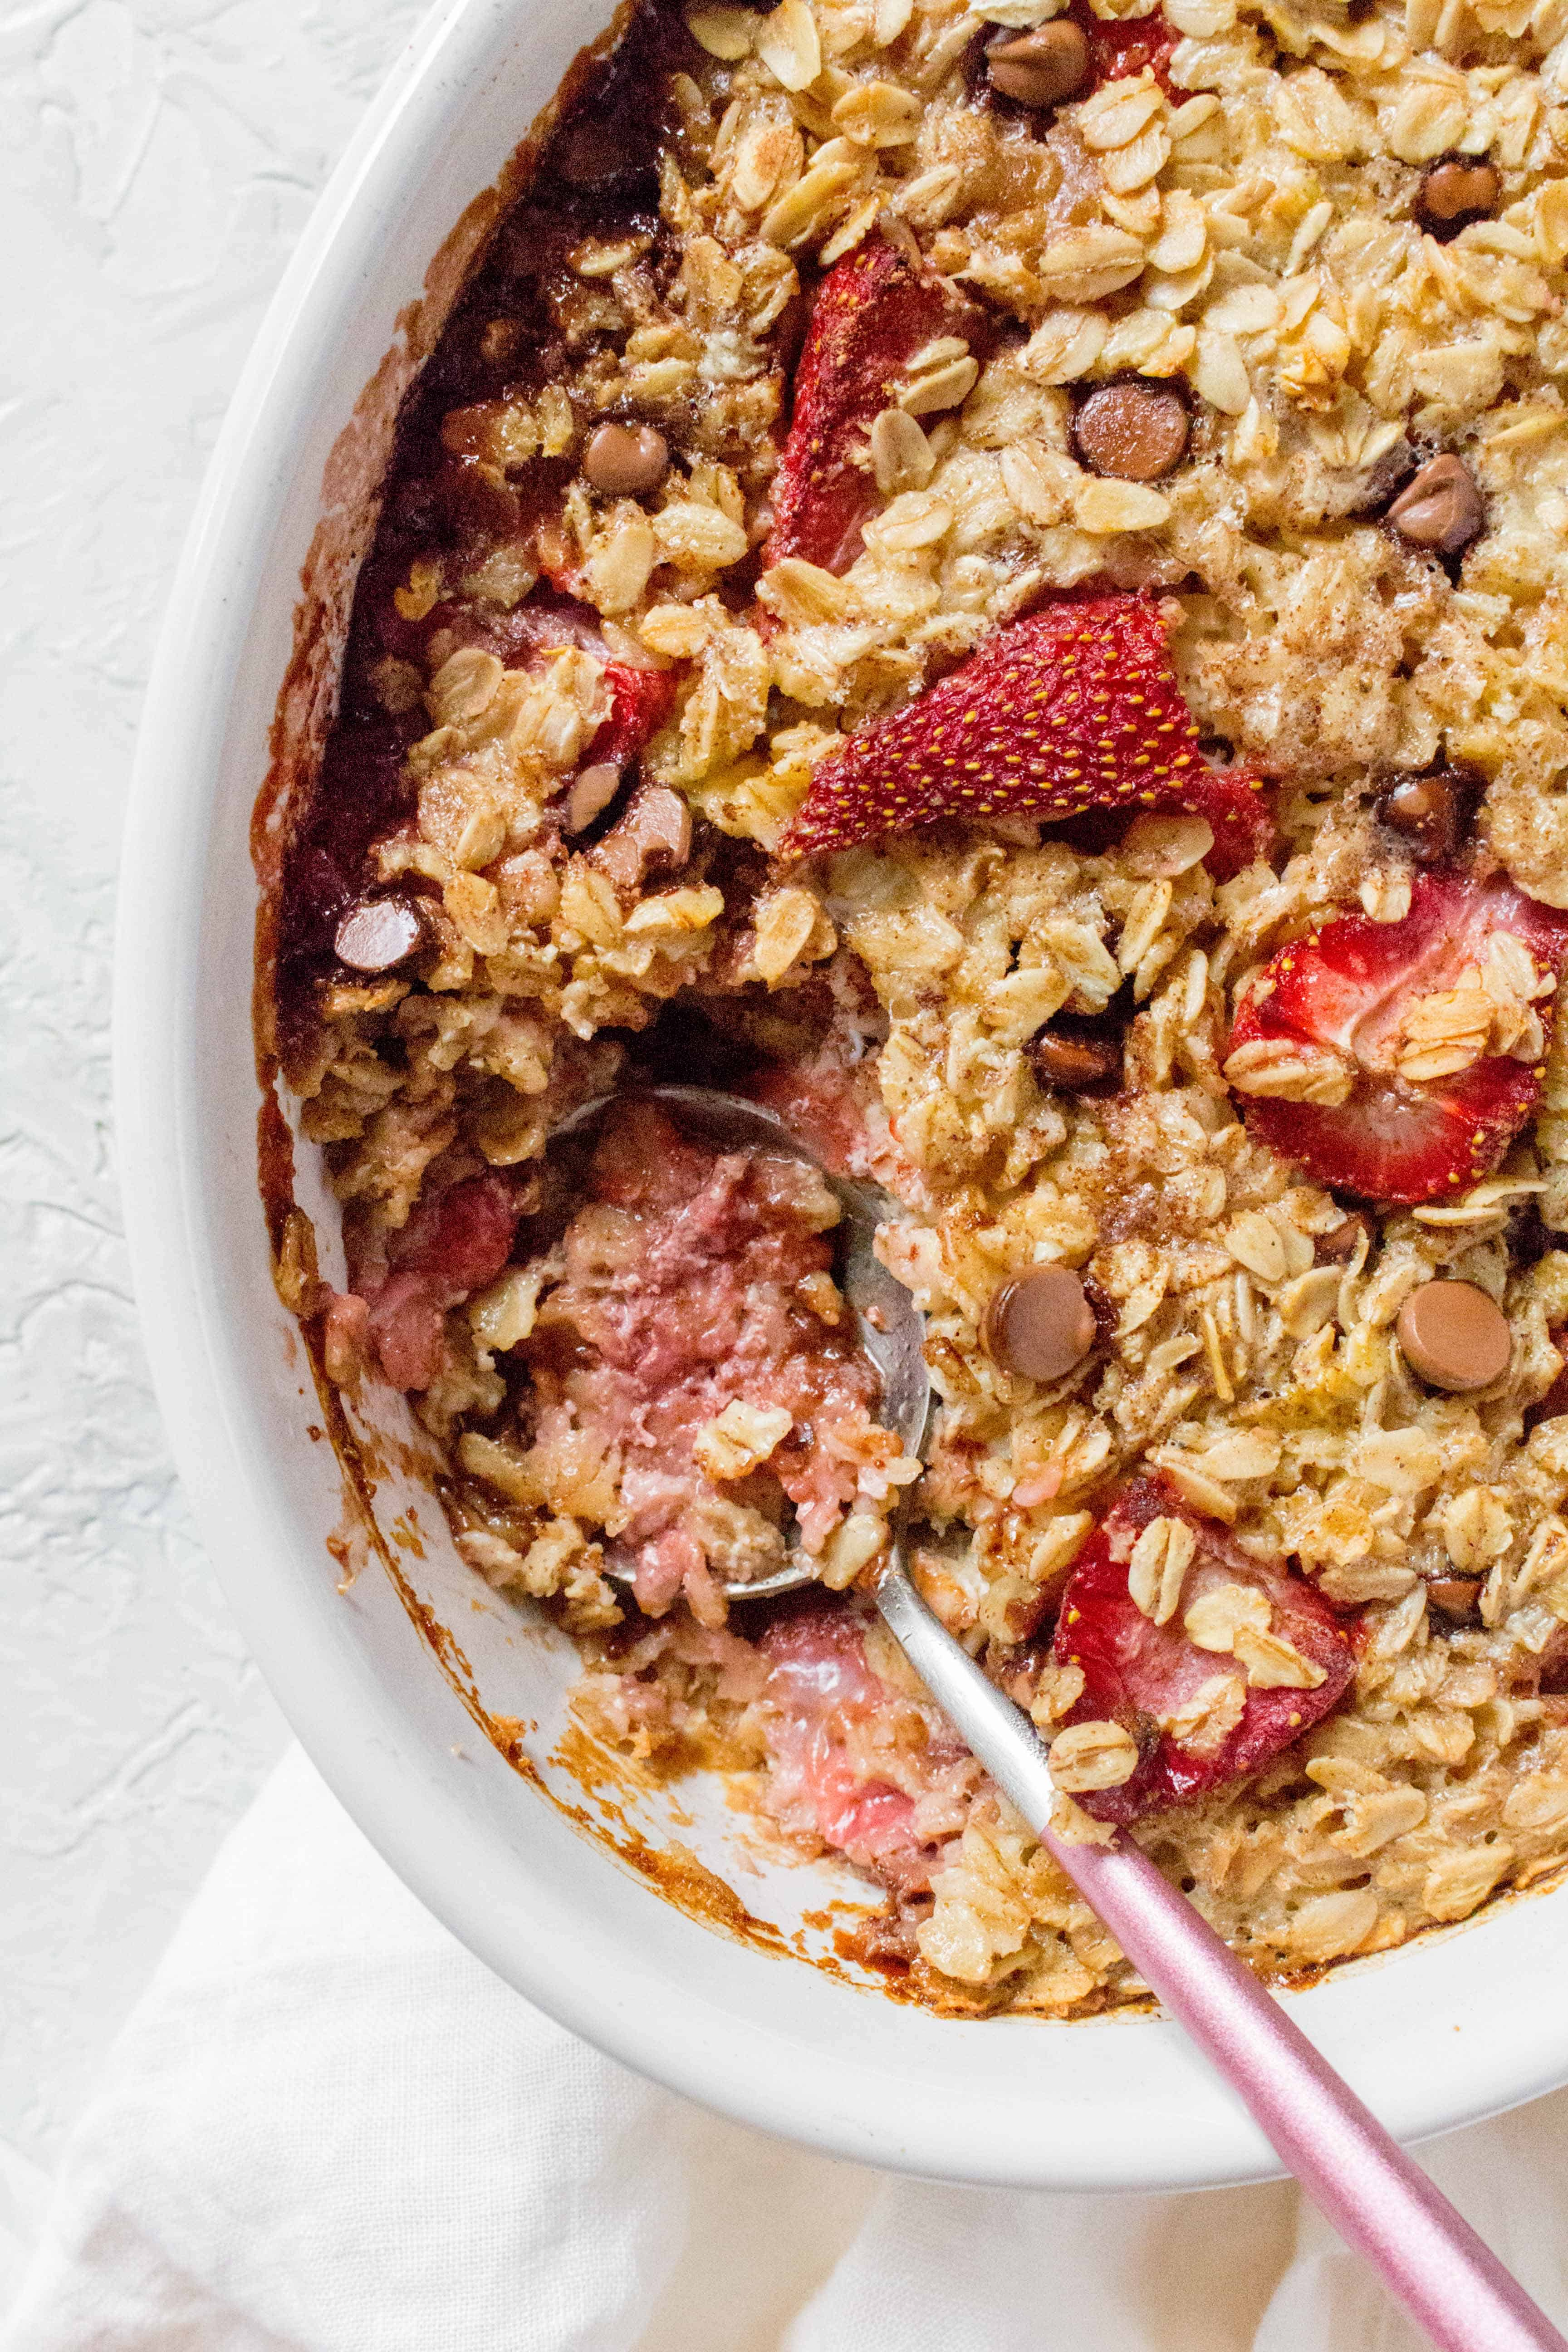 Strawberry with Chocolate Oatmeal Bake